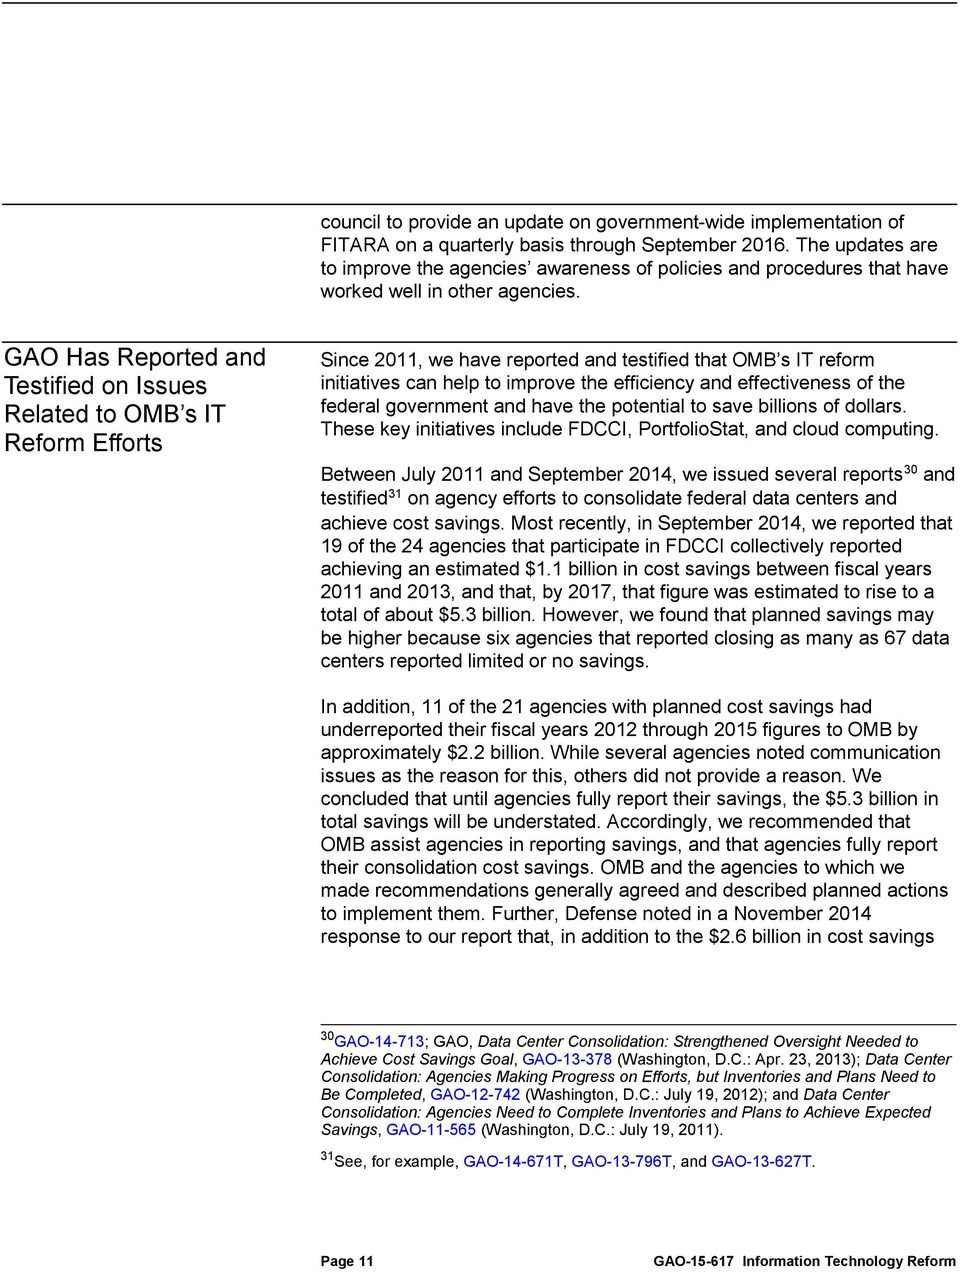 GAO Has Reported and Testified on Issues Related to OMB s IT Reform Efforts Since 2011, we have reported and testified that OMB s IT reform initiatives can help to improve the efficiency and